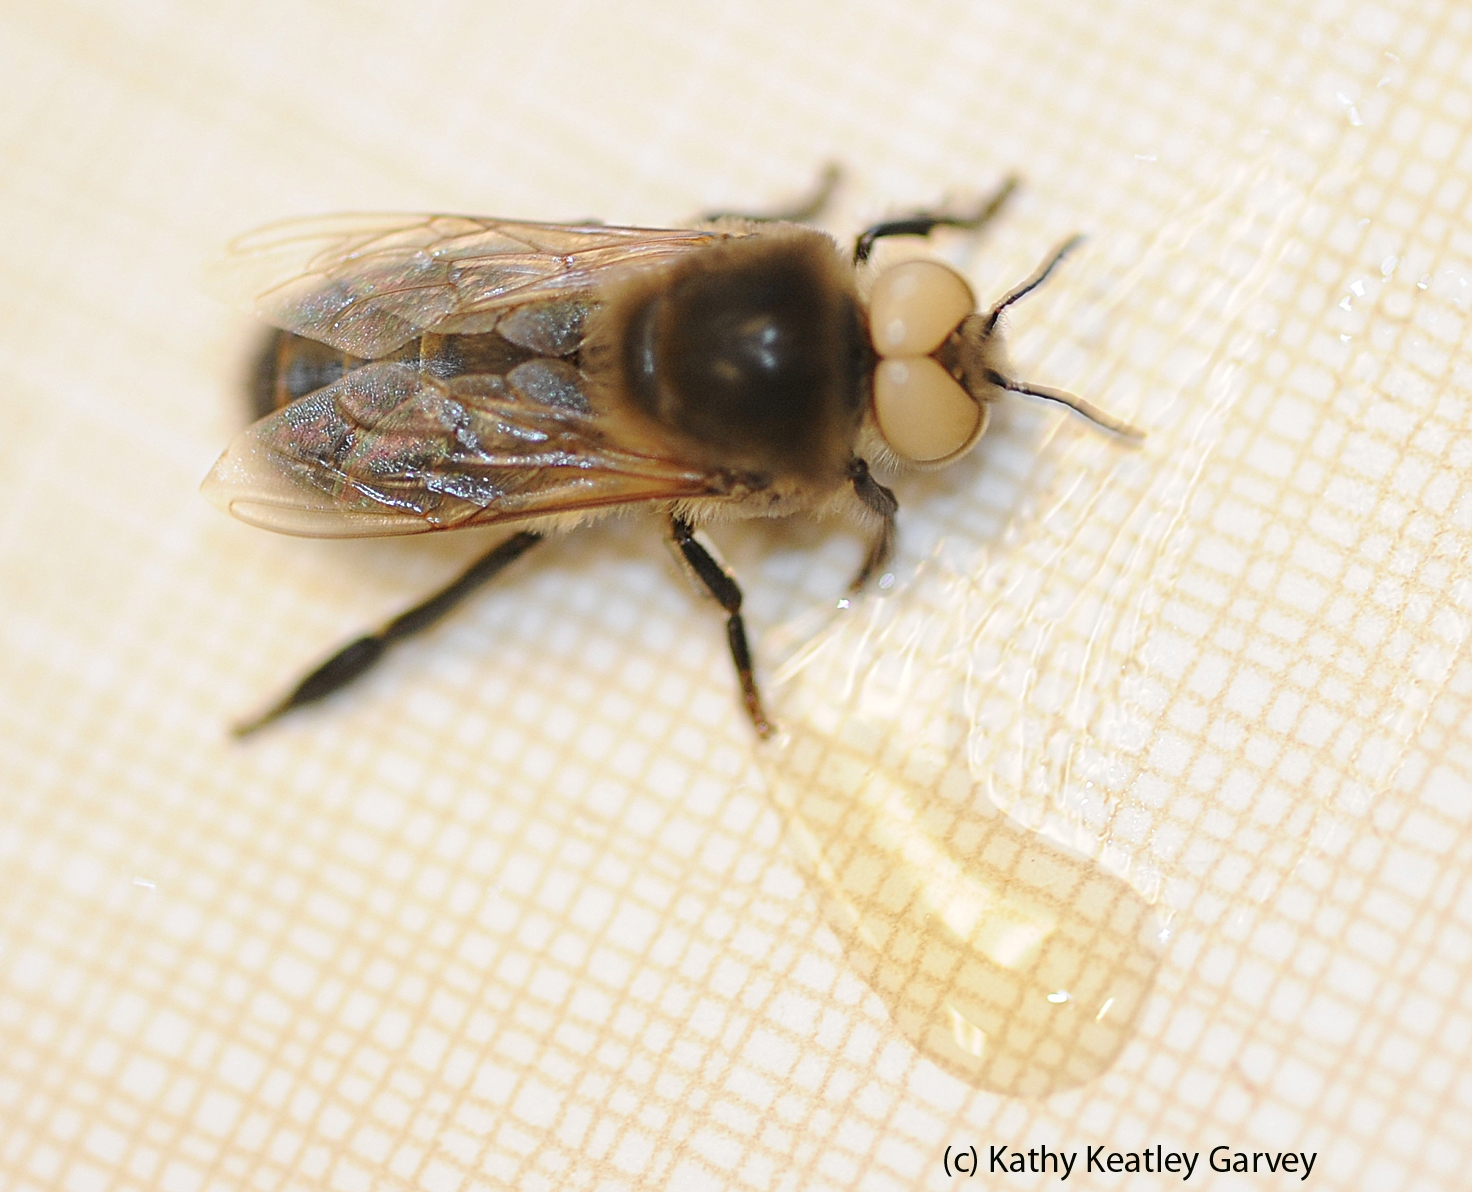 This Is A White Eyed Caucasian Dark Honey Bee Drone Drones Are Blind In The Foreground Photo By Kathy Keatley Garvey